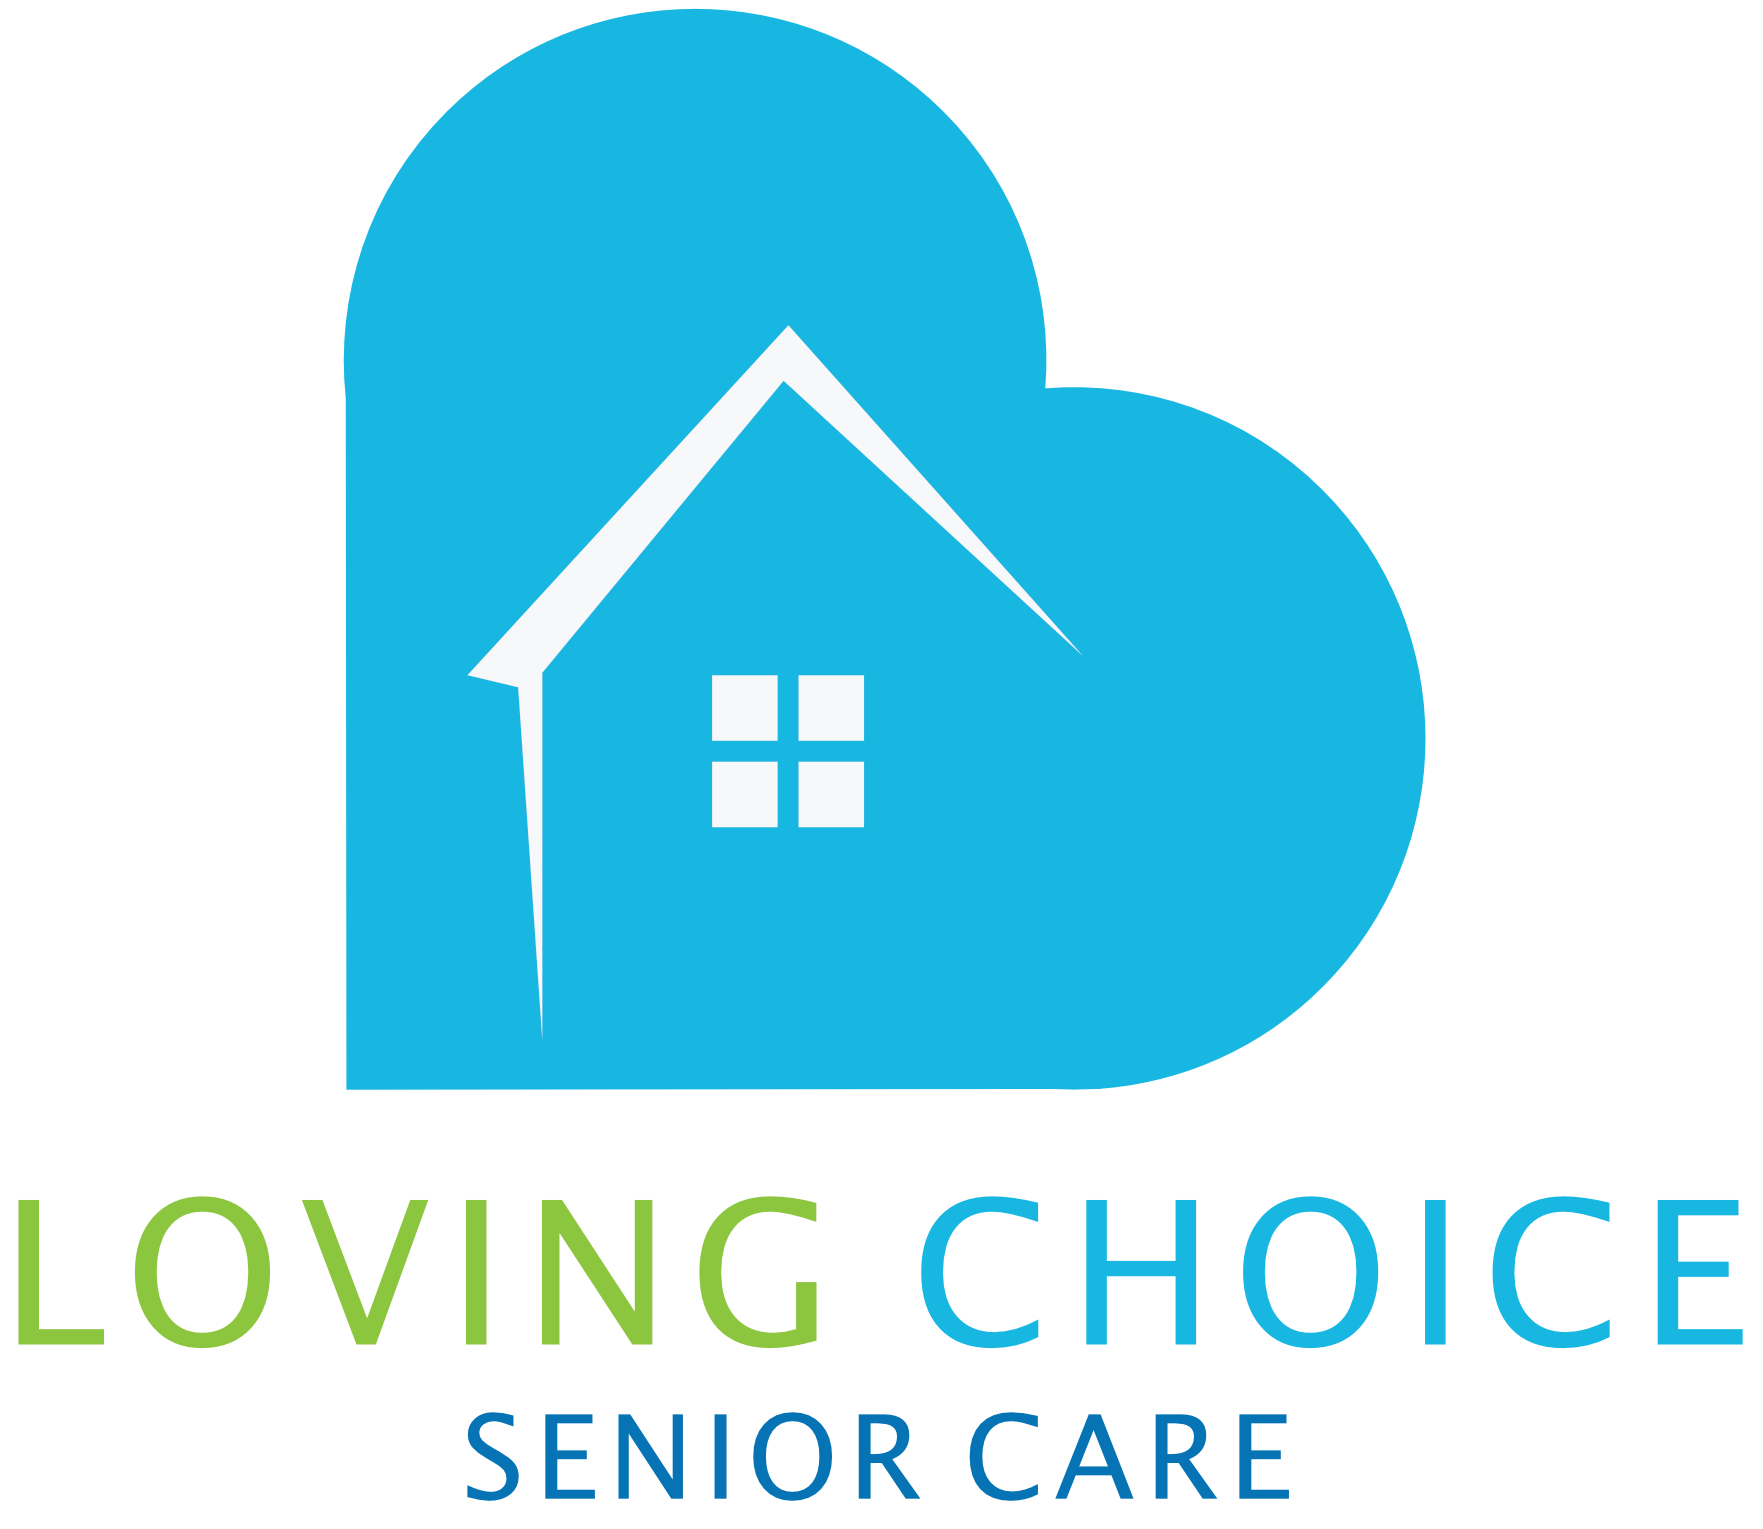 Loving Choice Senior Care Logo